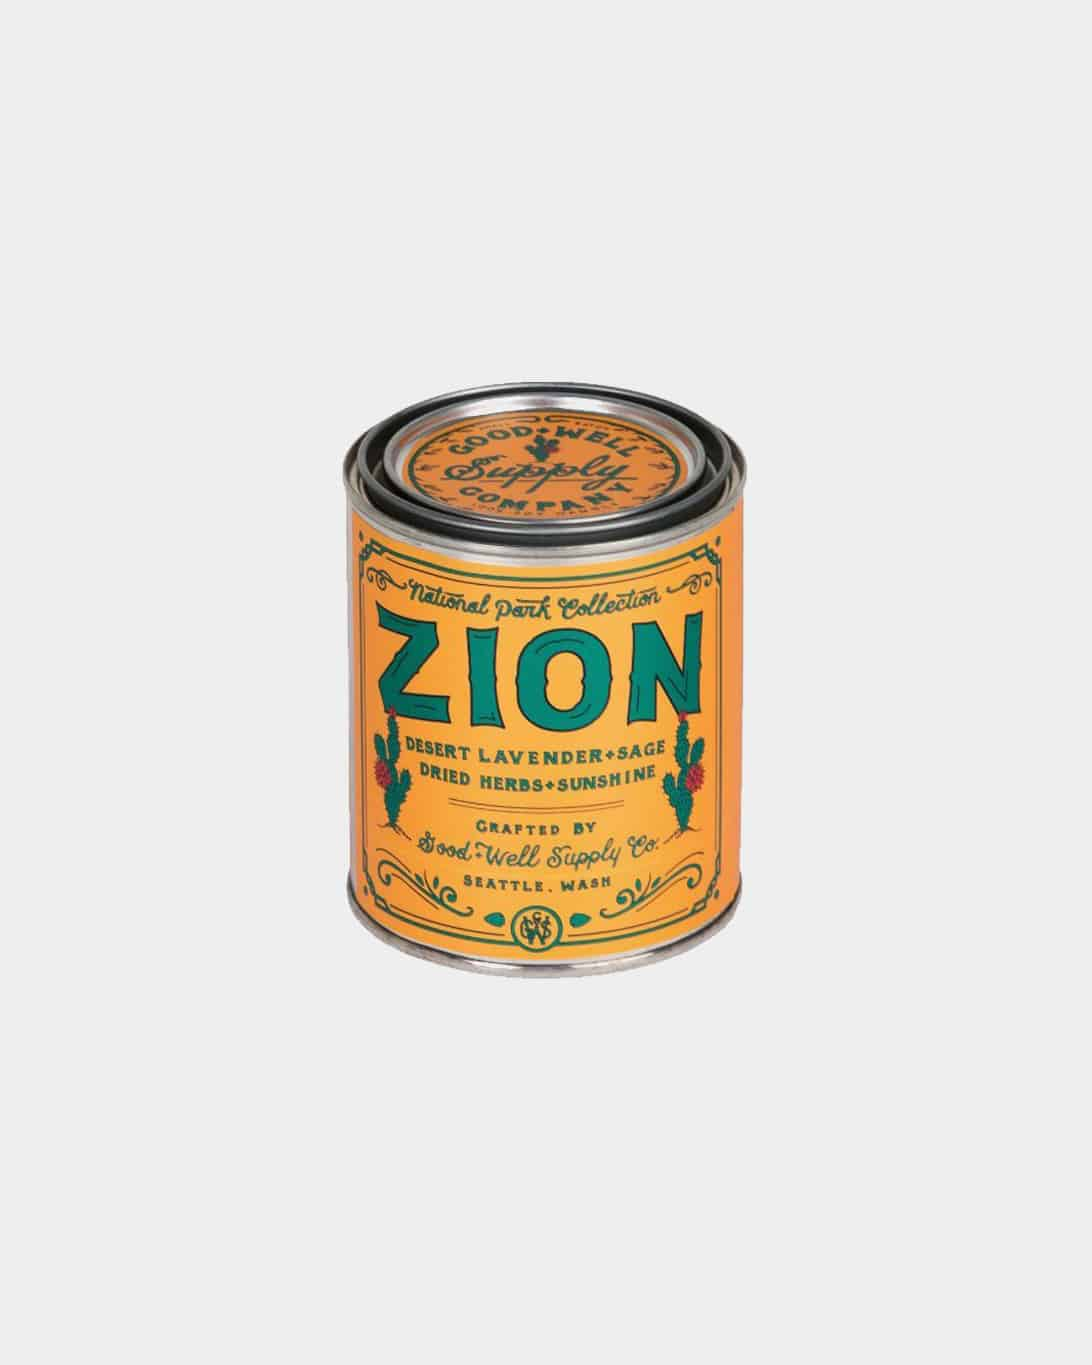 Zion Candle 1/2 Pint Soy Candle- Desert Lavender Sage + Dried Herbs